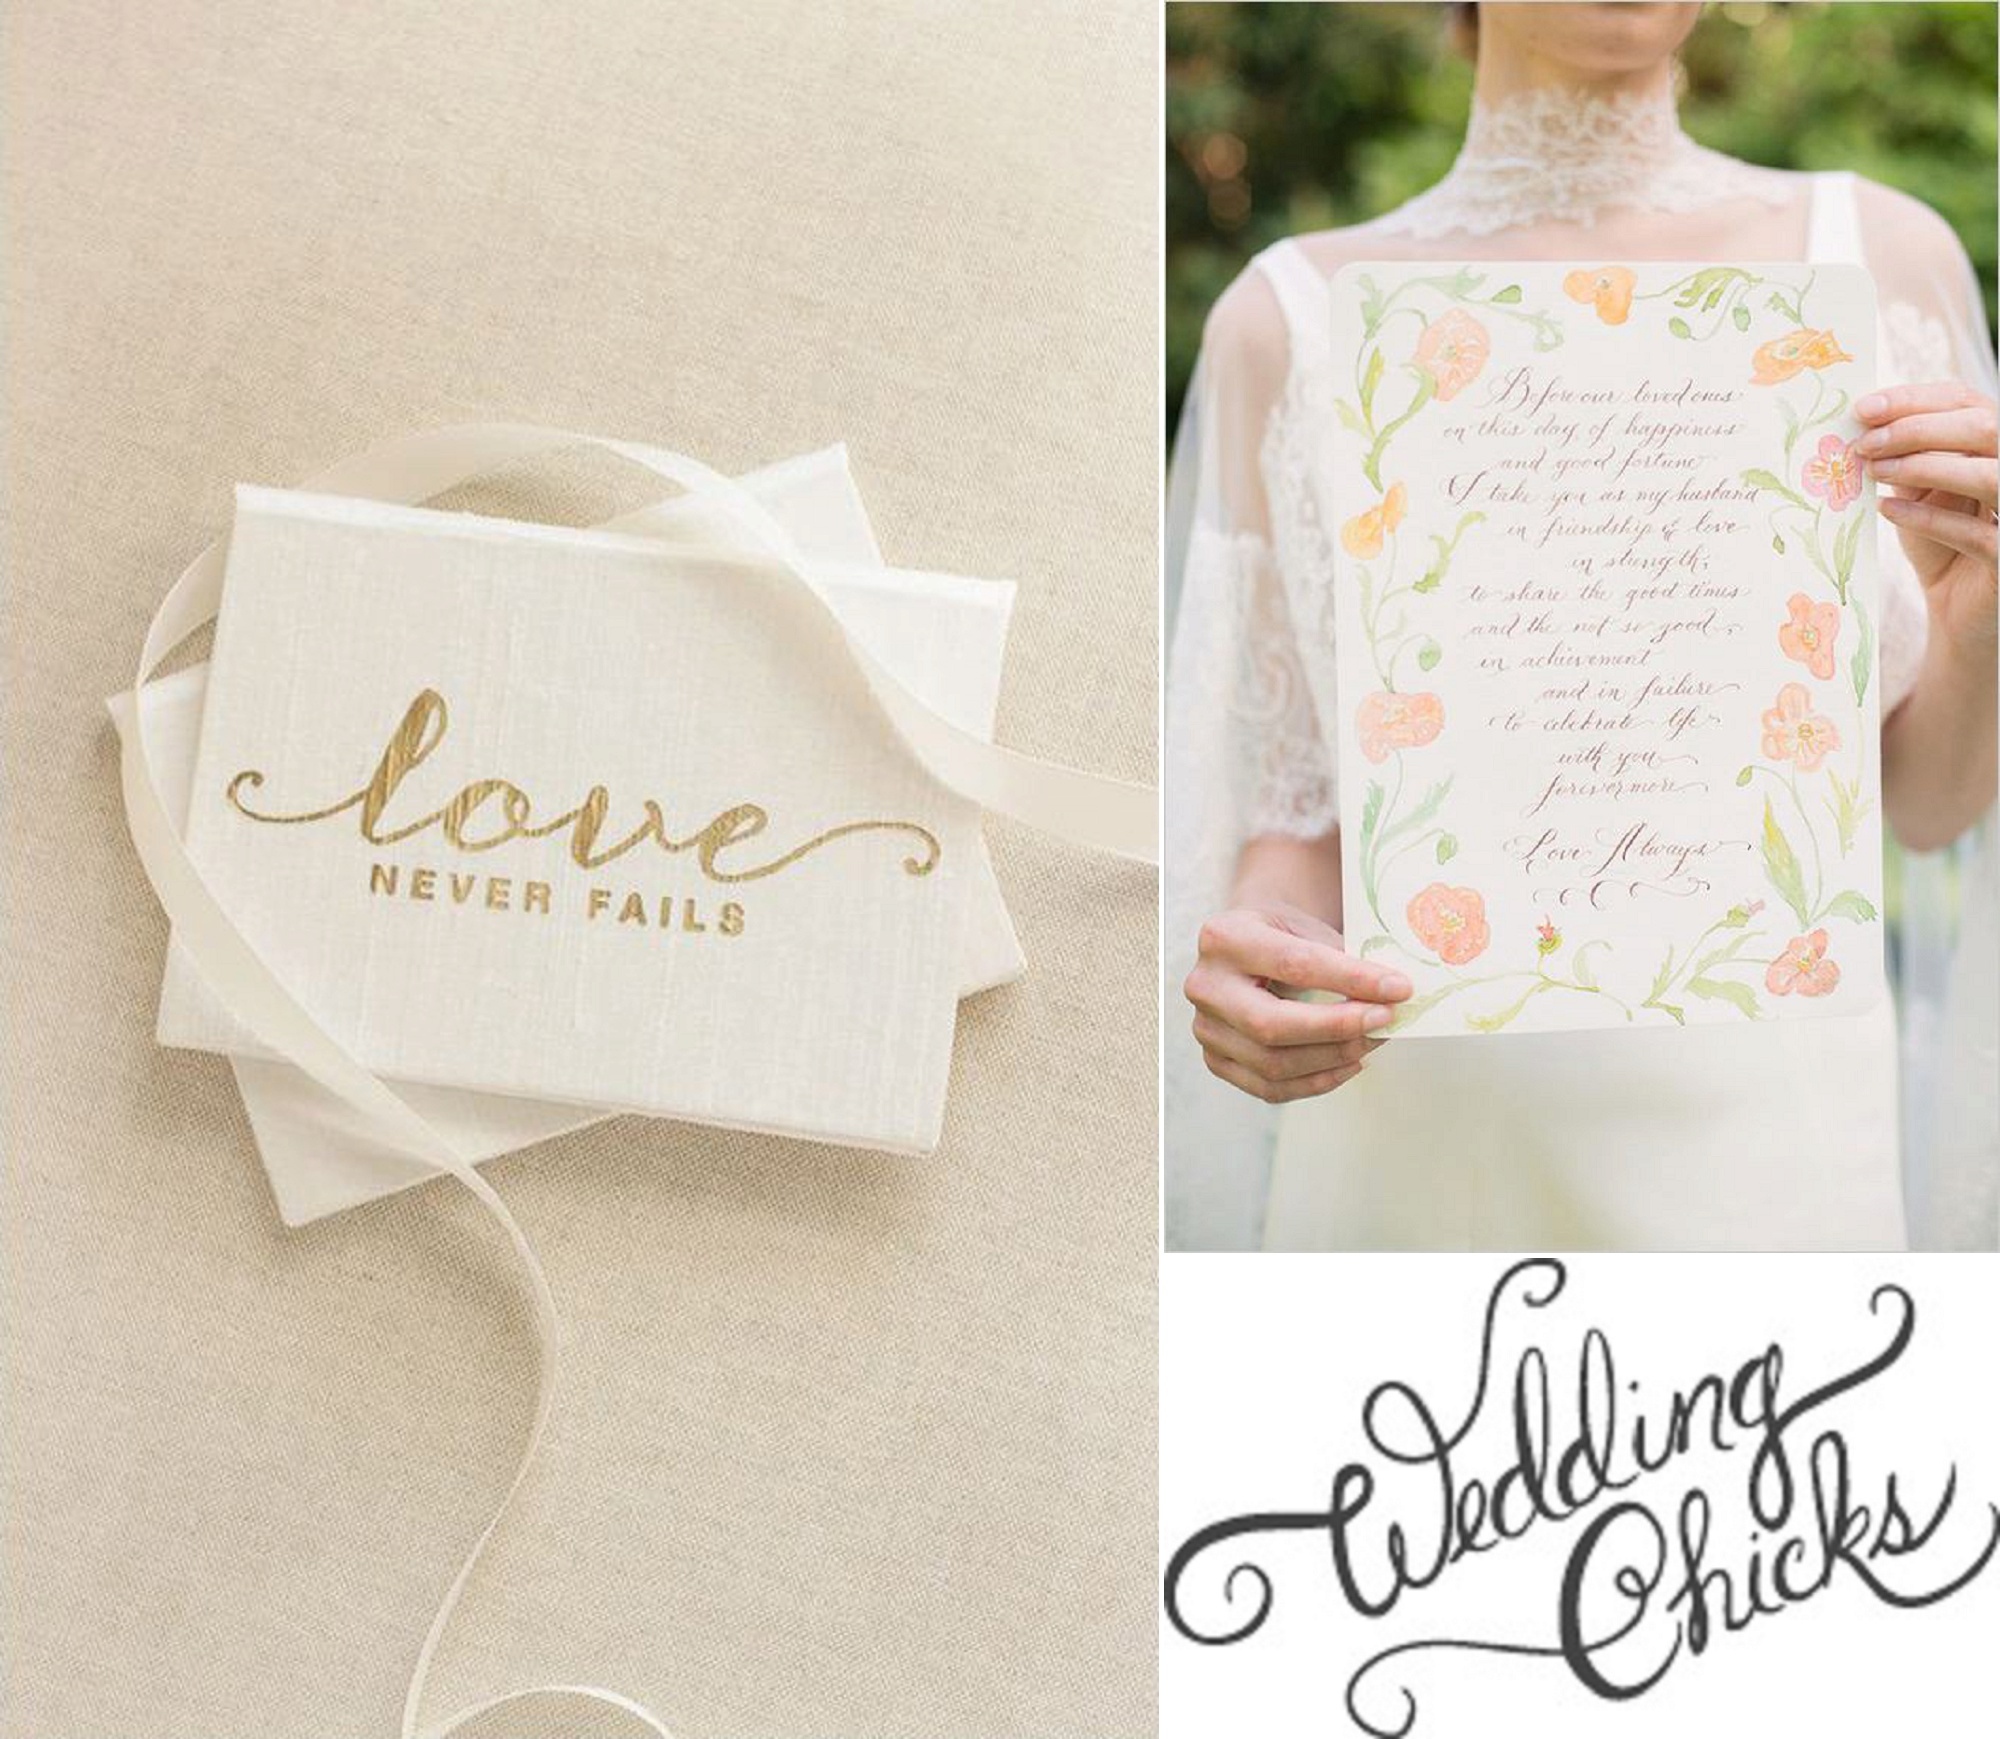 10 Tips for Writing Your Vows from Wedding Chicks